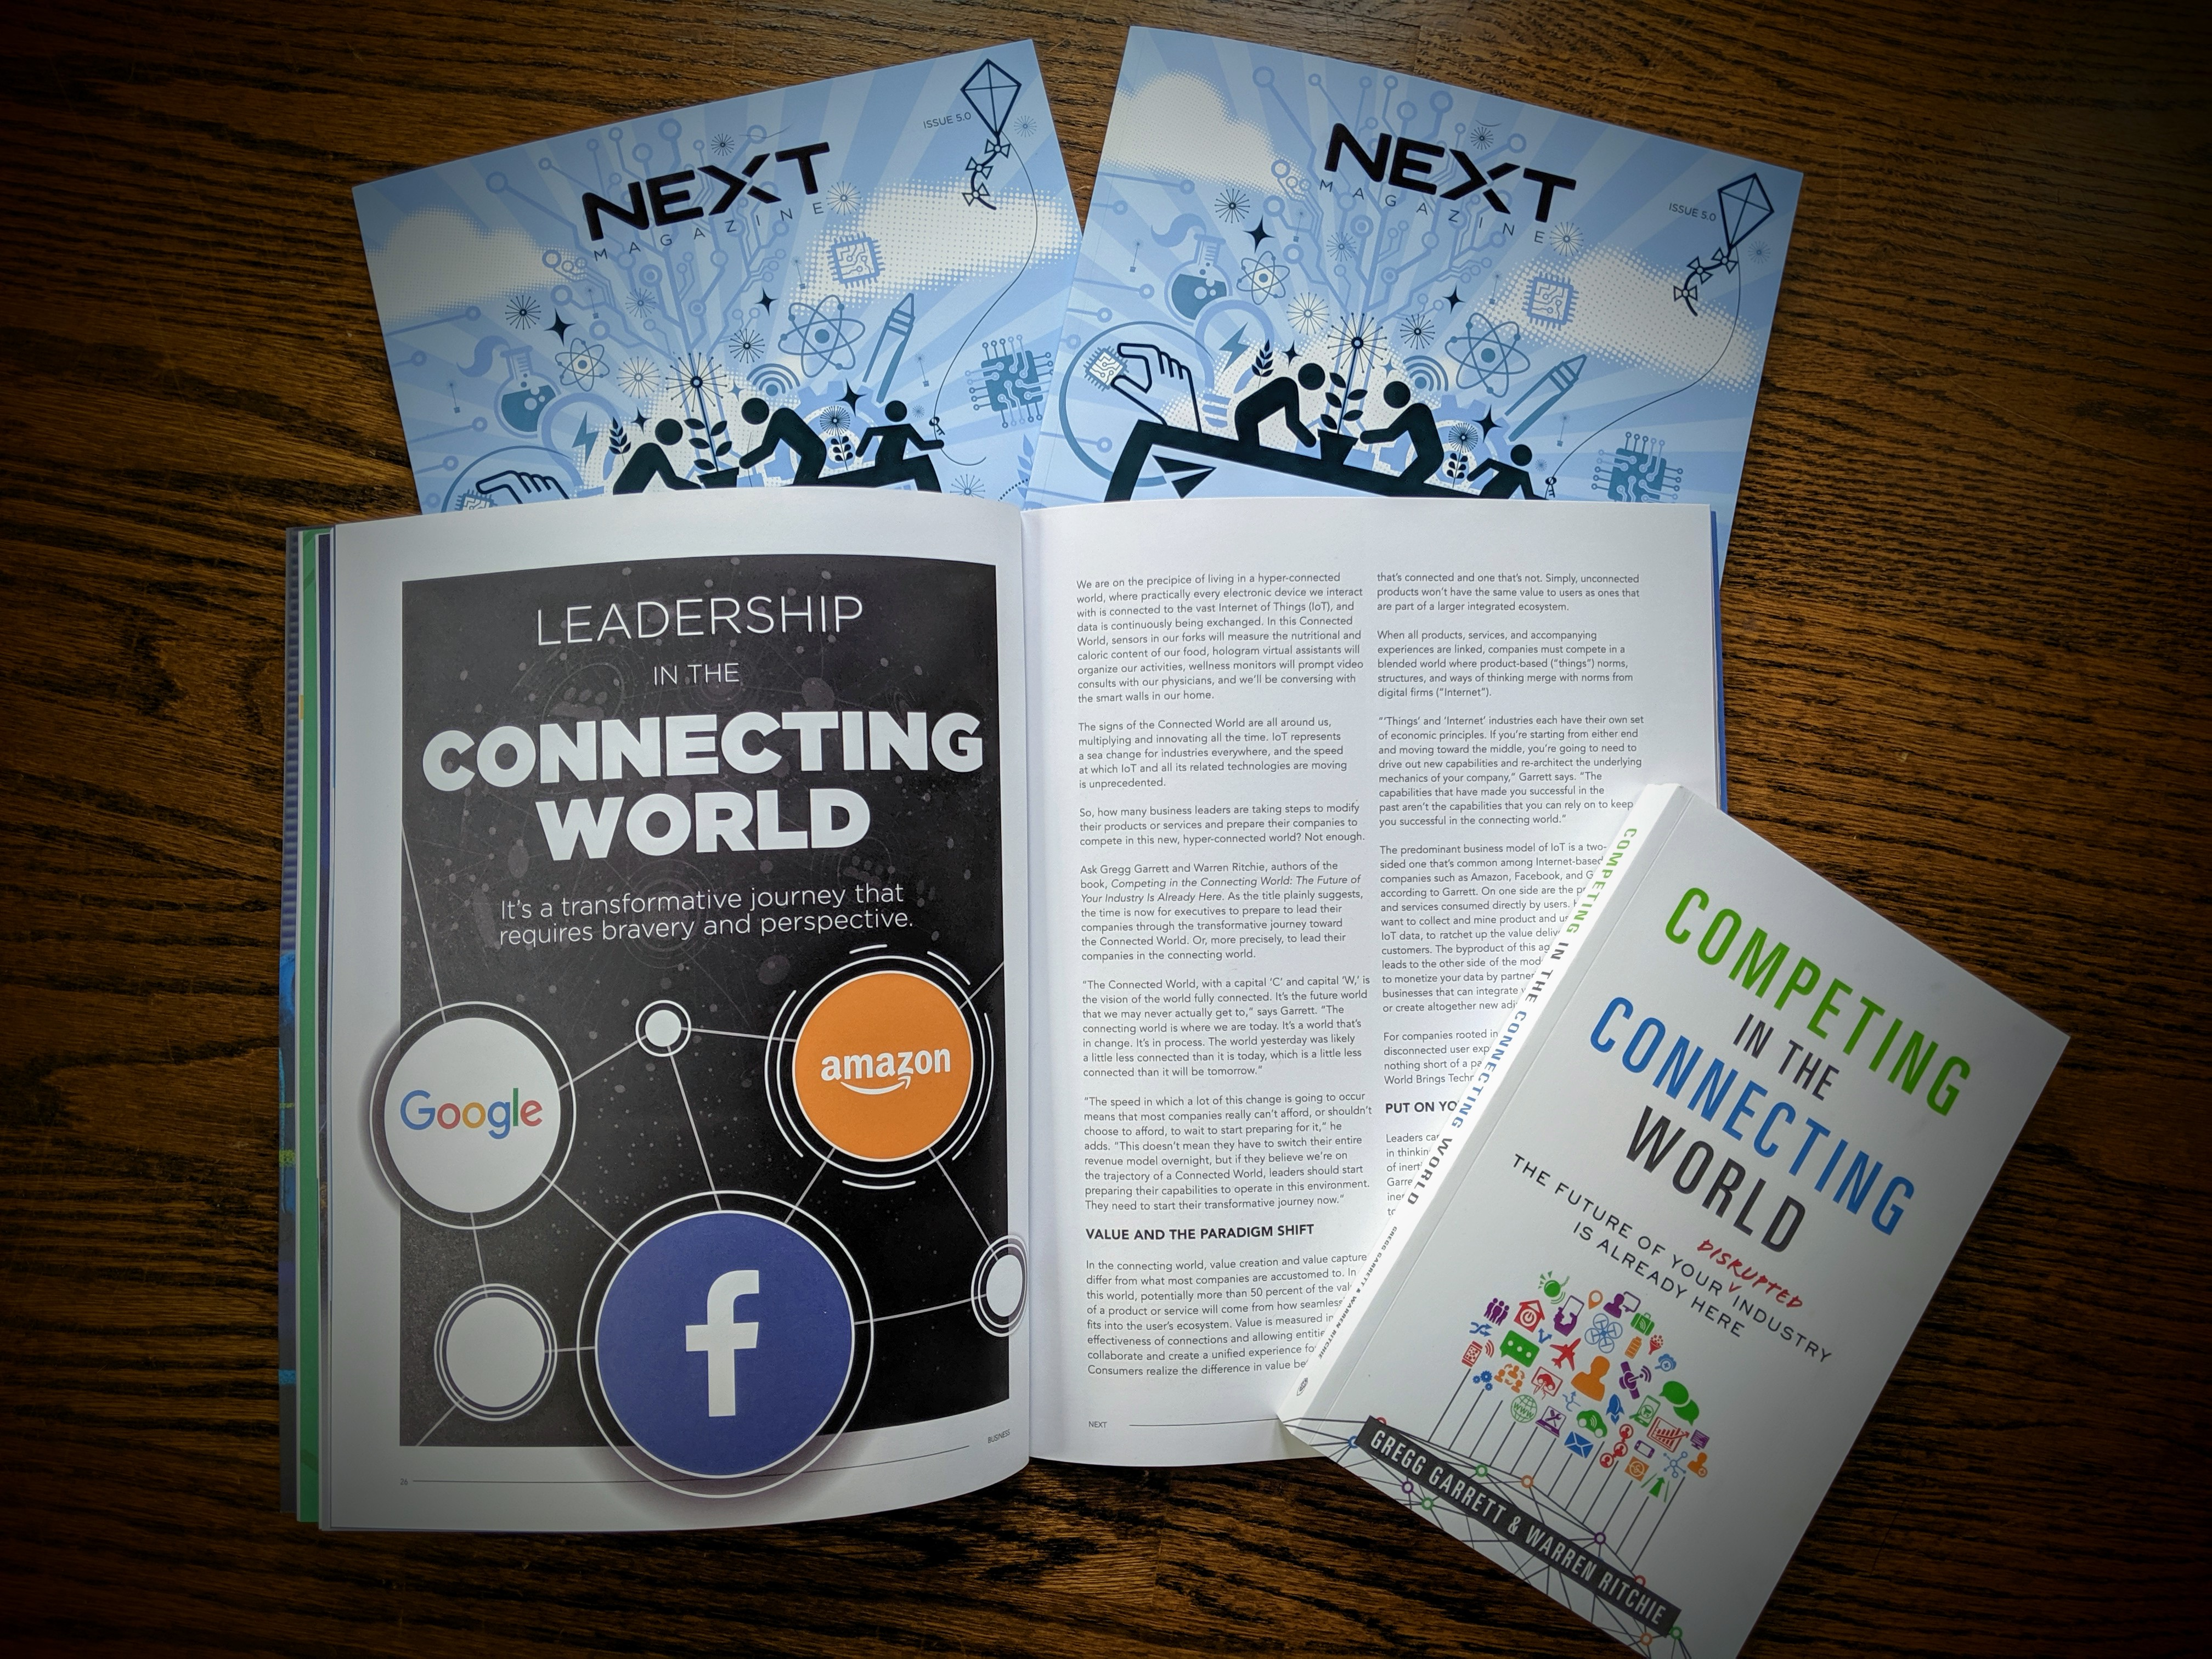 CGS' Thought Leadership on the Connected World highlighted in recent article